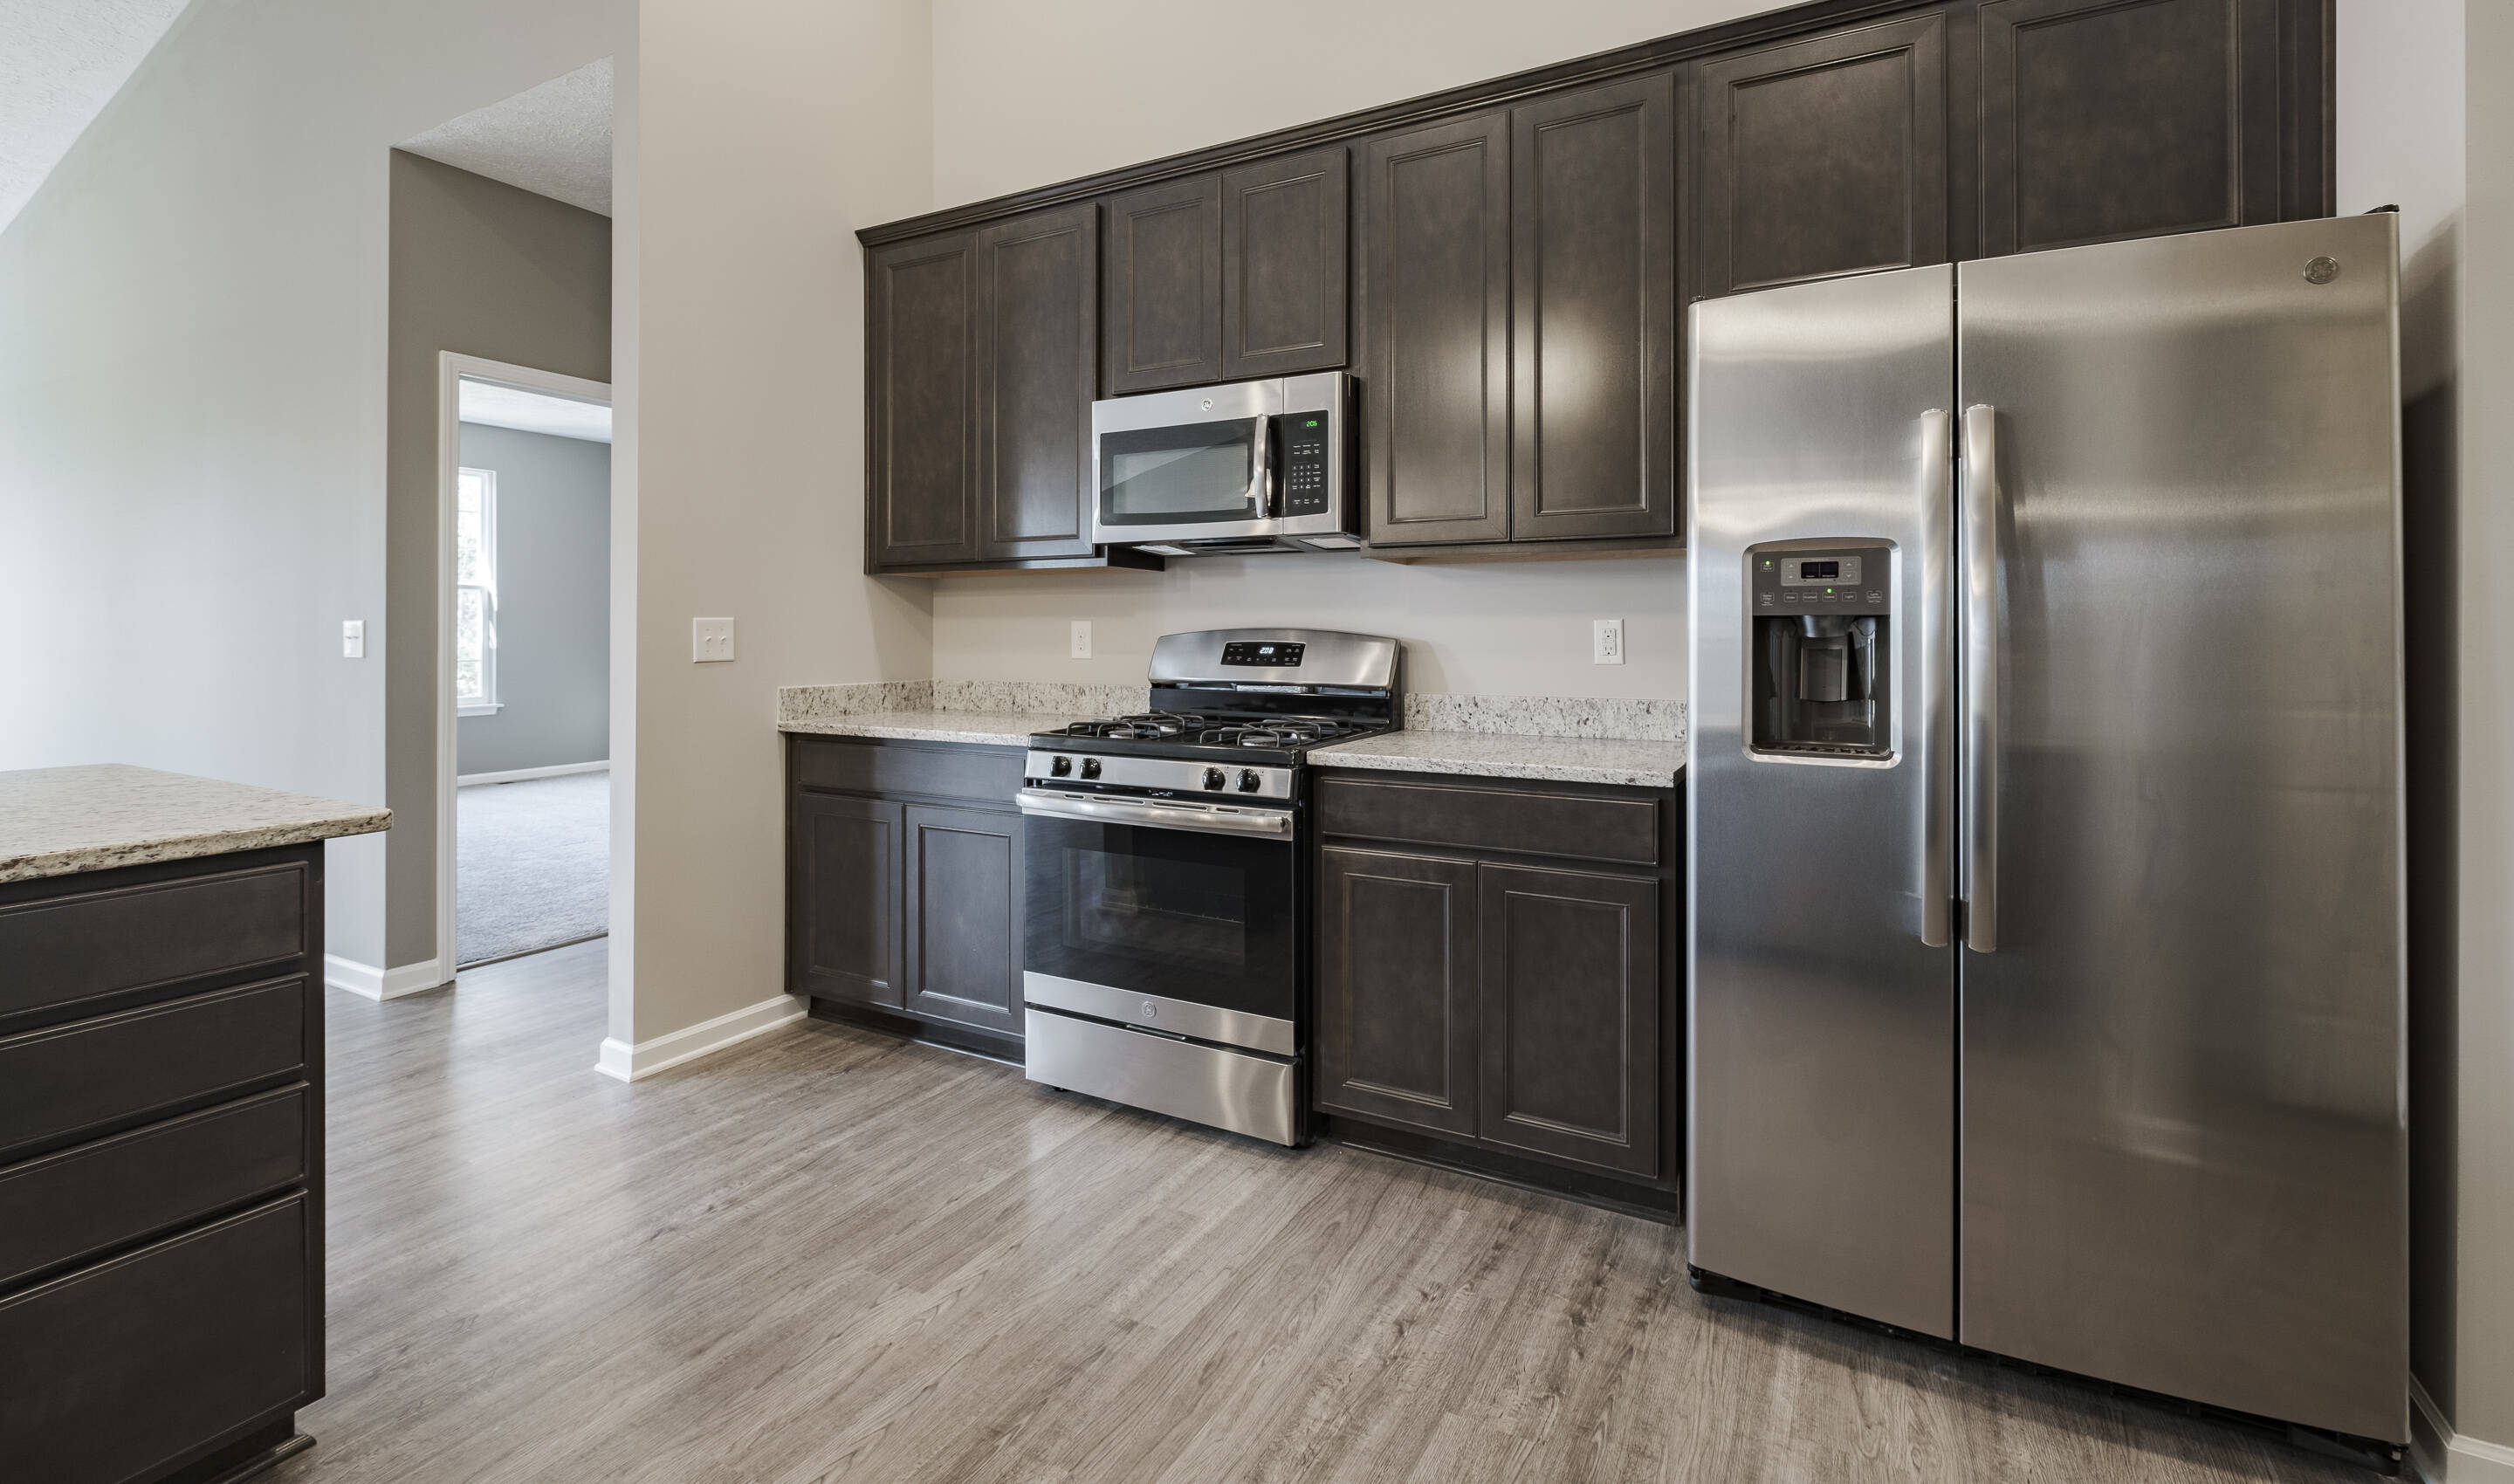 Optional stainless steel appliance package